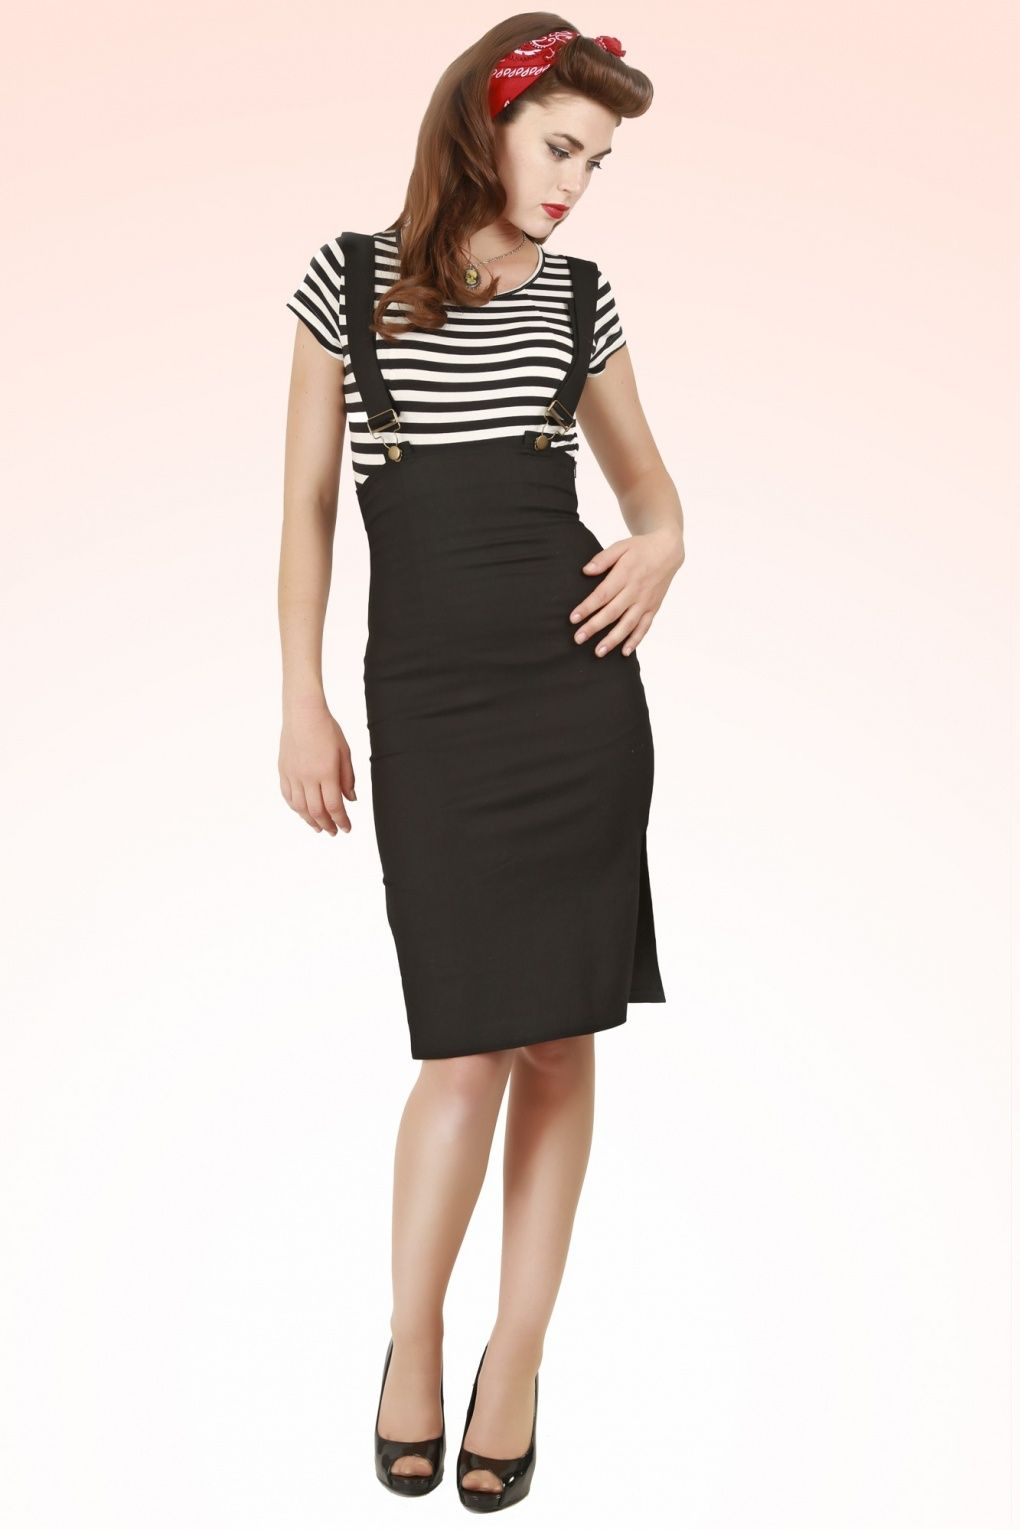 ba6234fa1dade7 70 Stylish Pencil Skirt outfit examples for you | Fashion Model ...